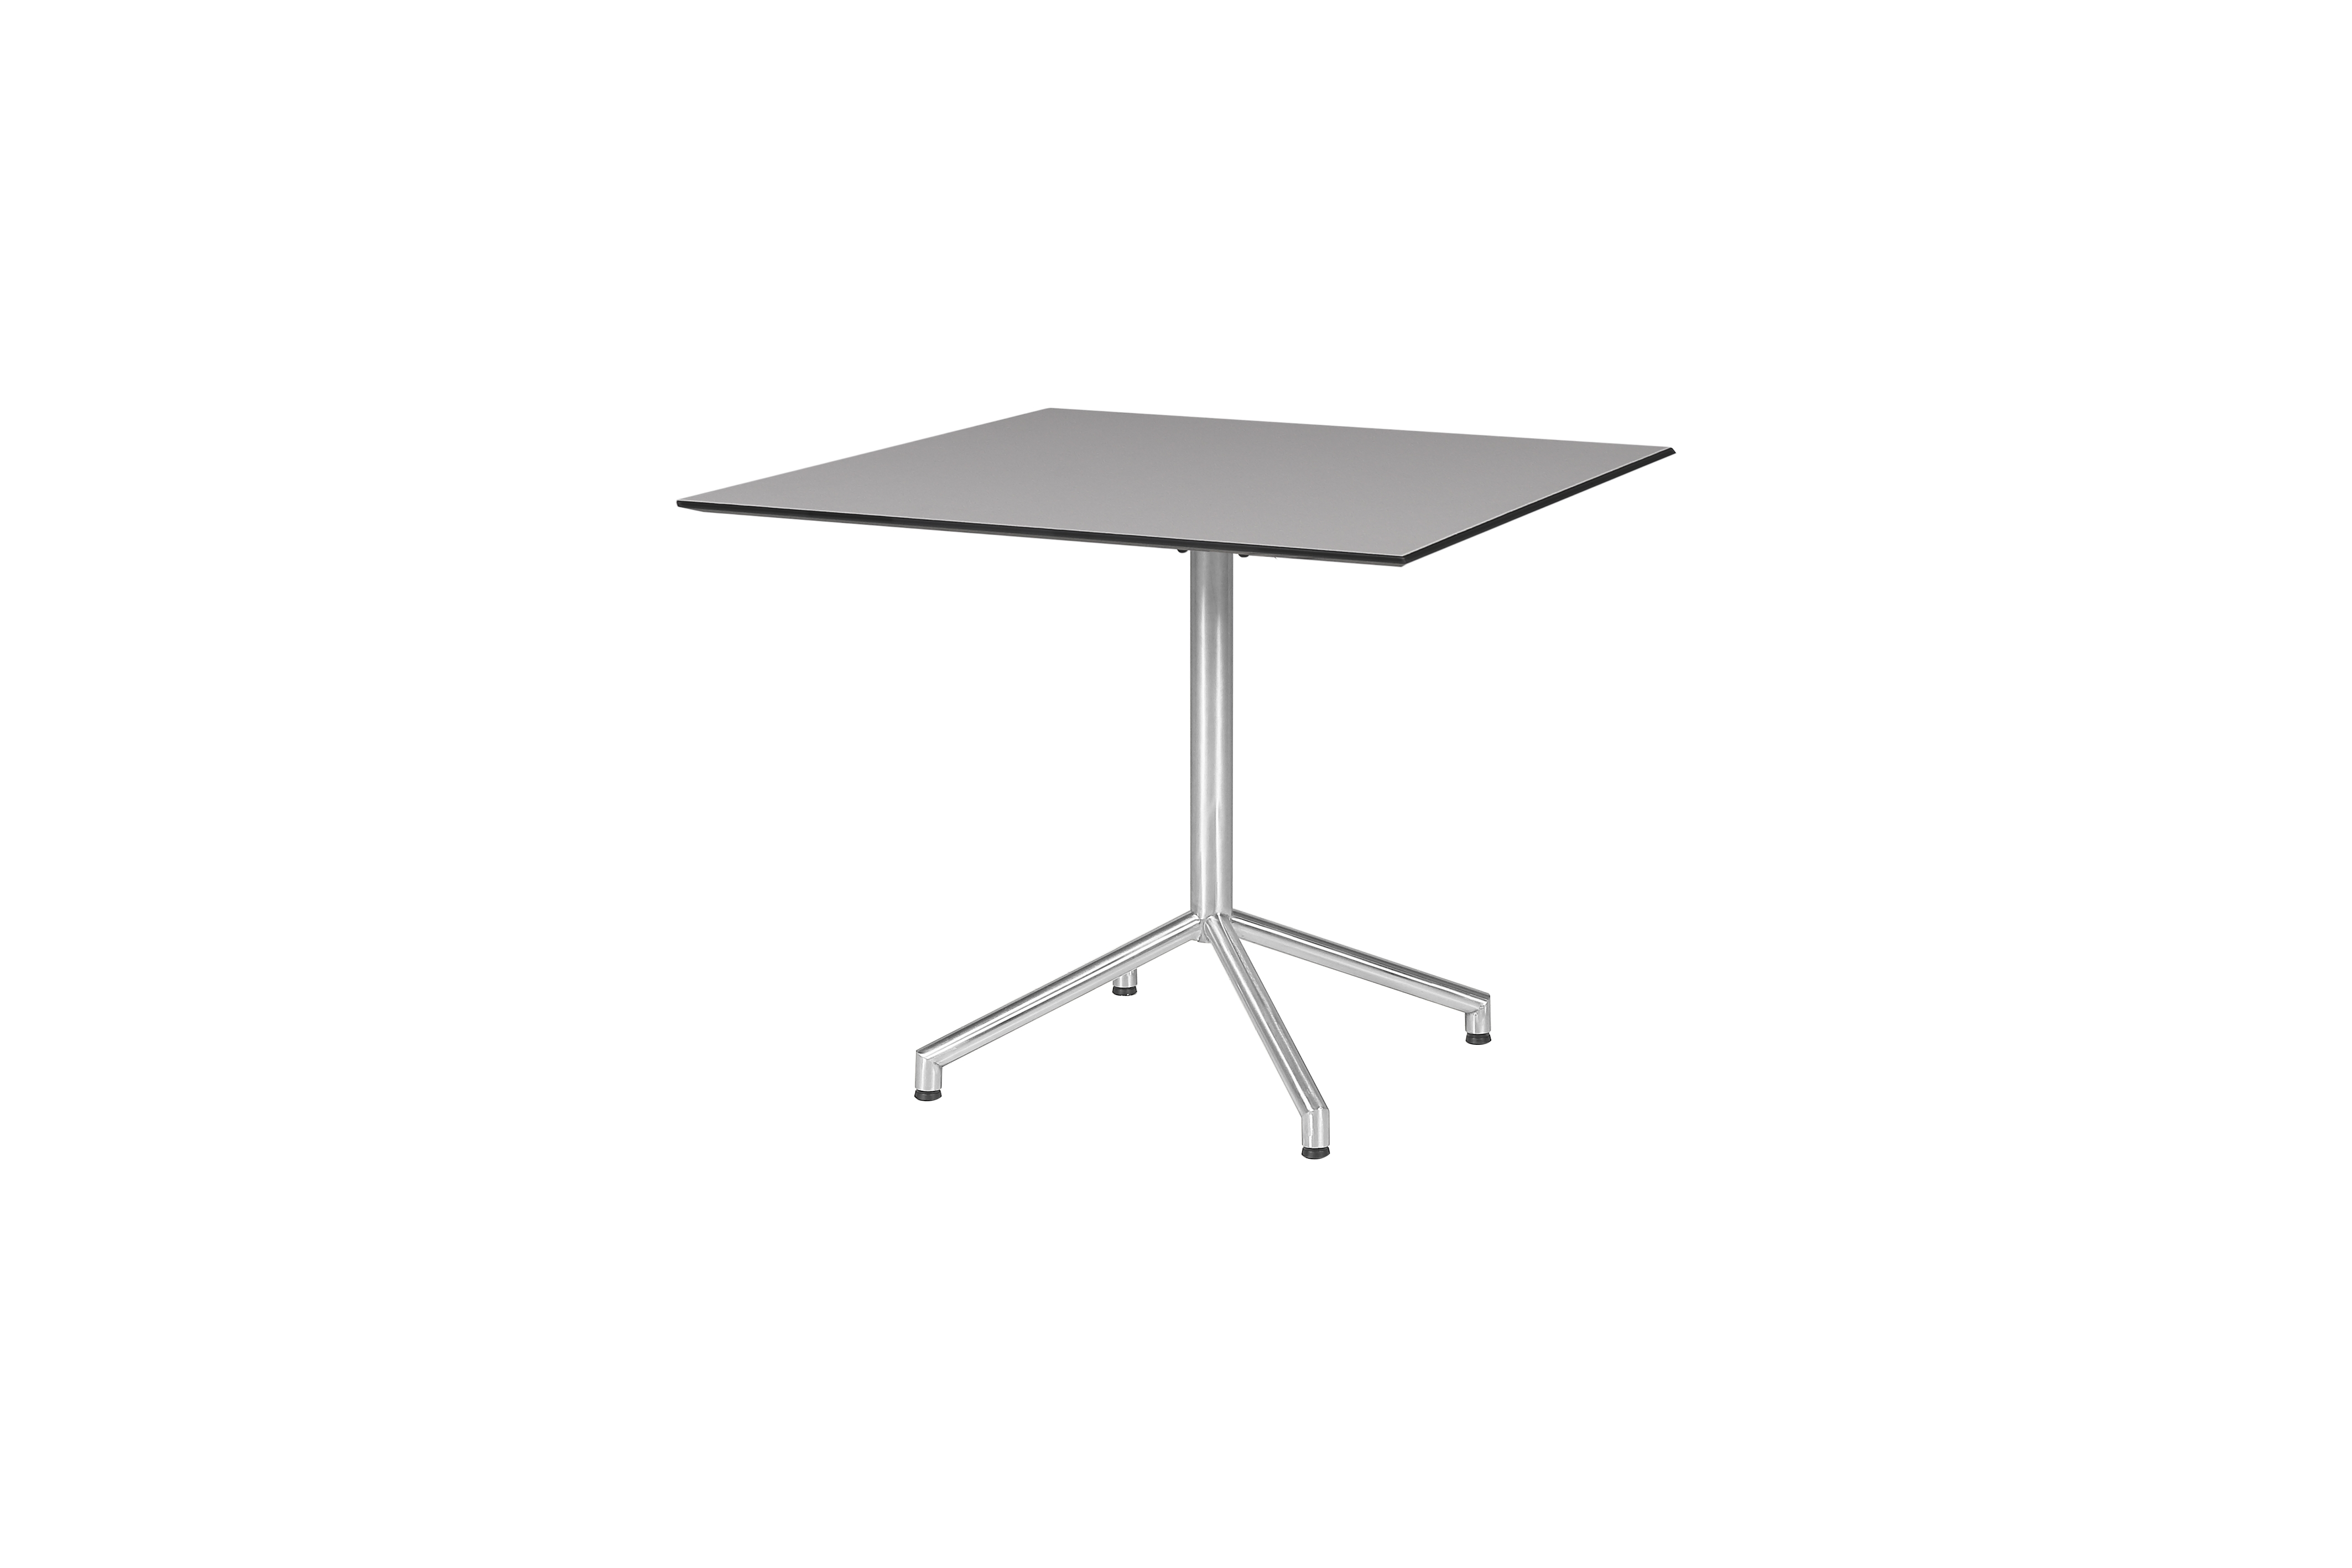 MAMAGREEN_CAF04_CAFFE_square_table_89x89_cm_hpl